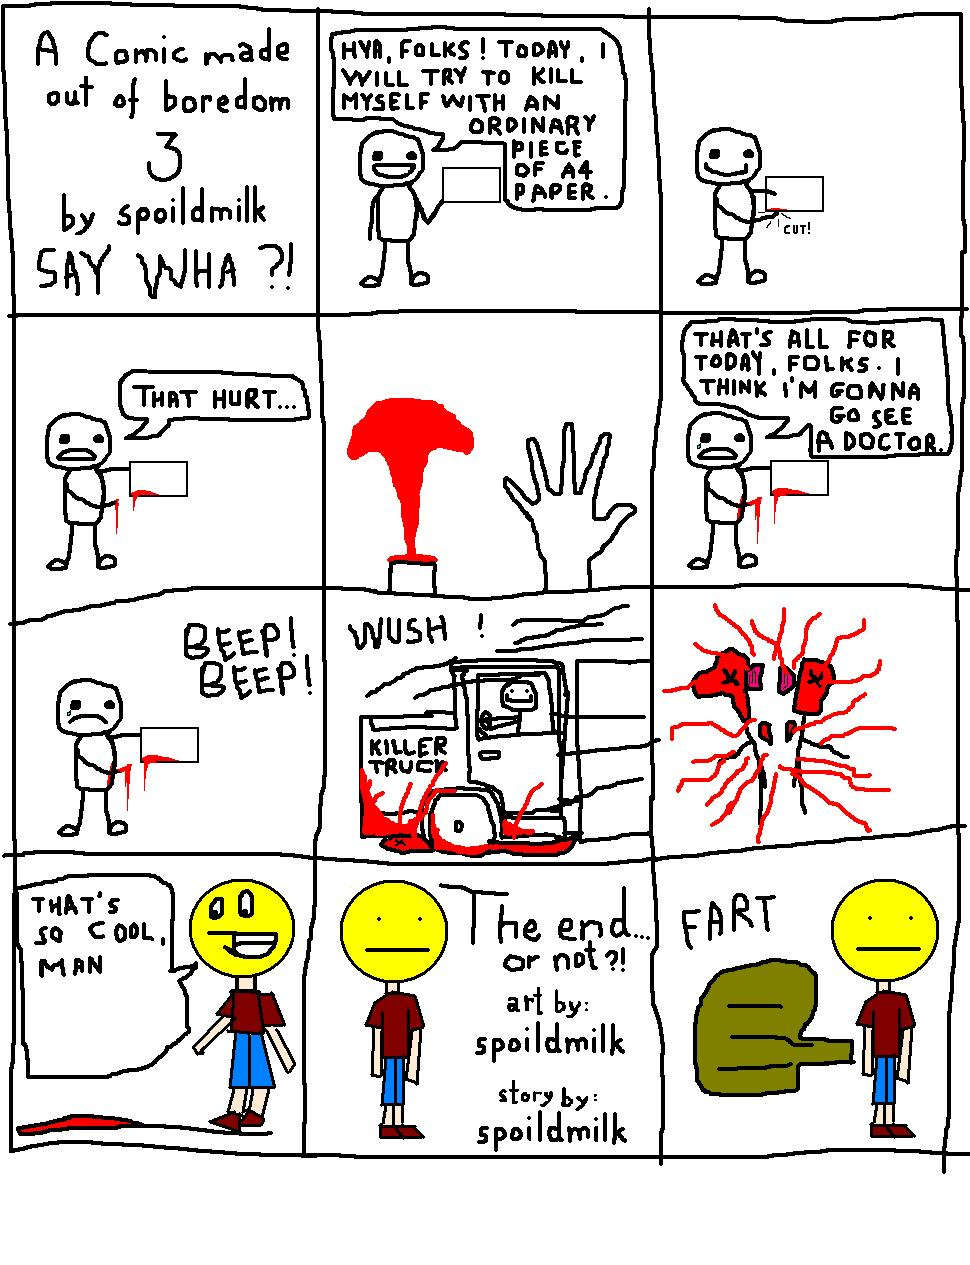 A Comic made out of boredom